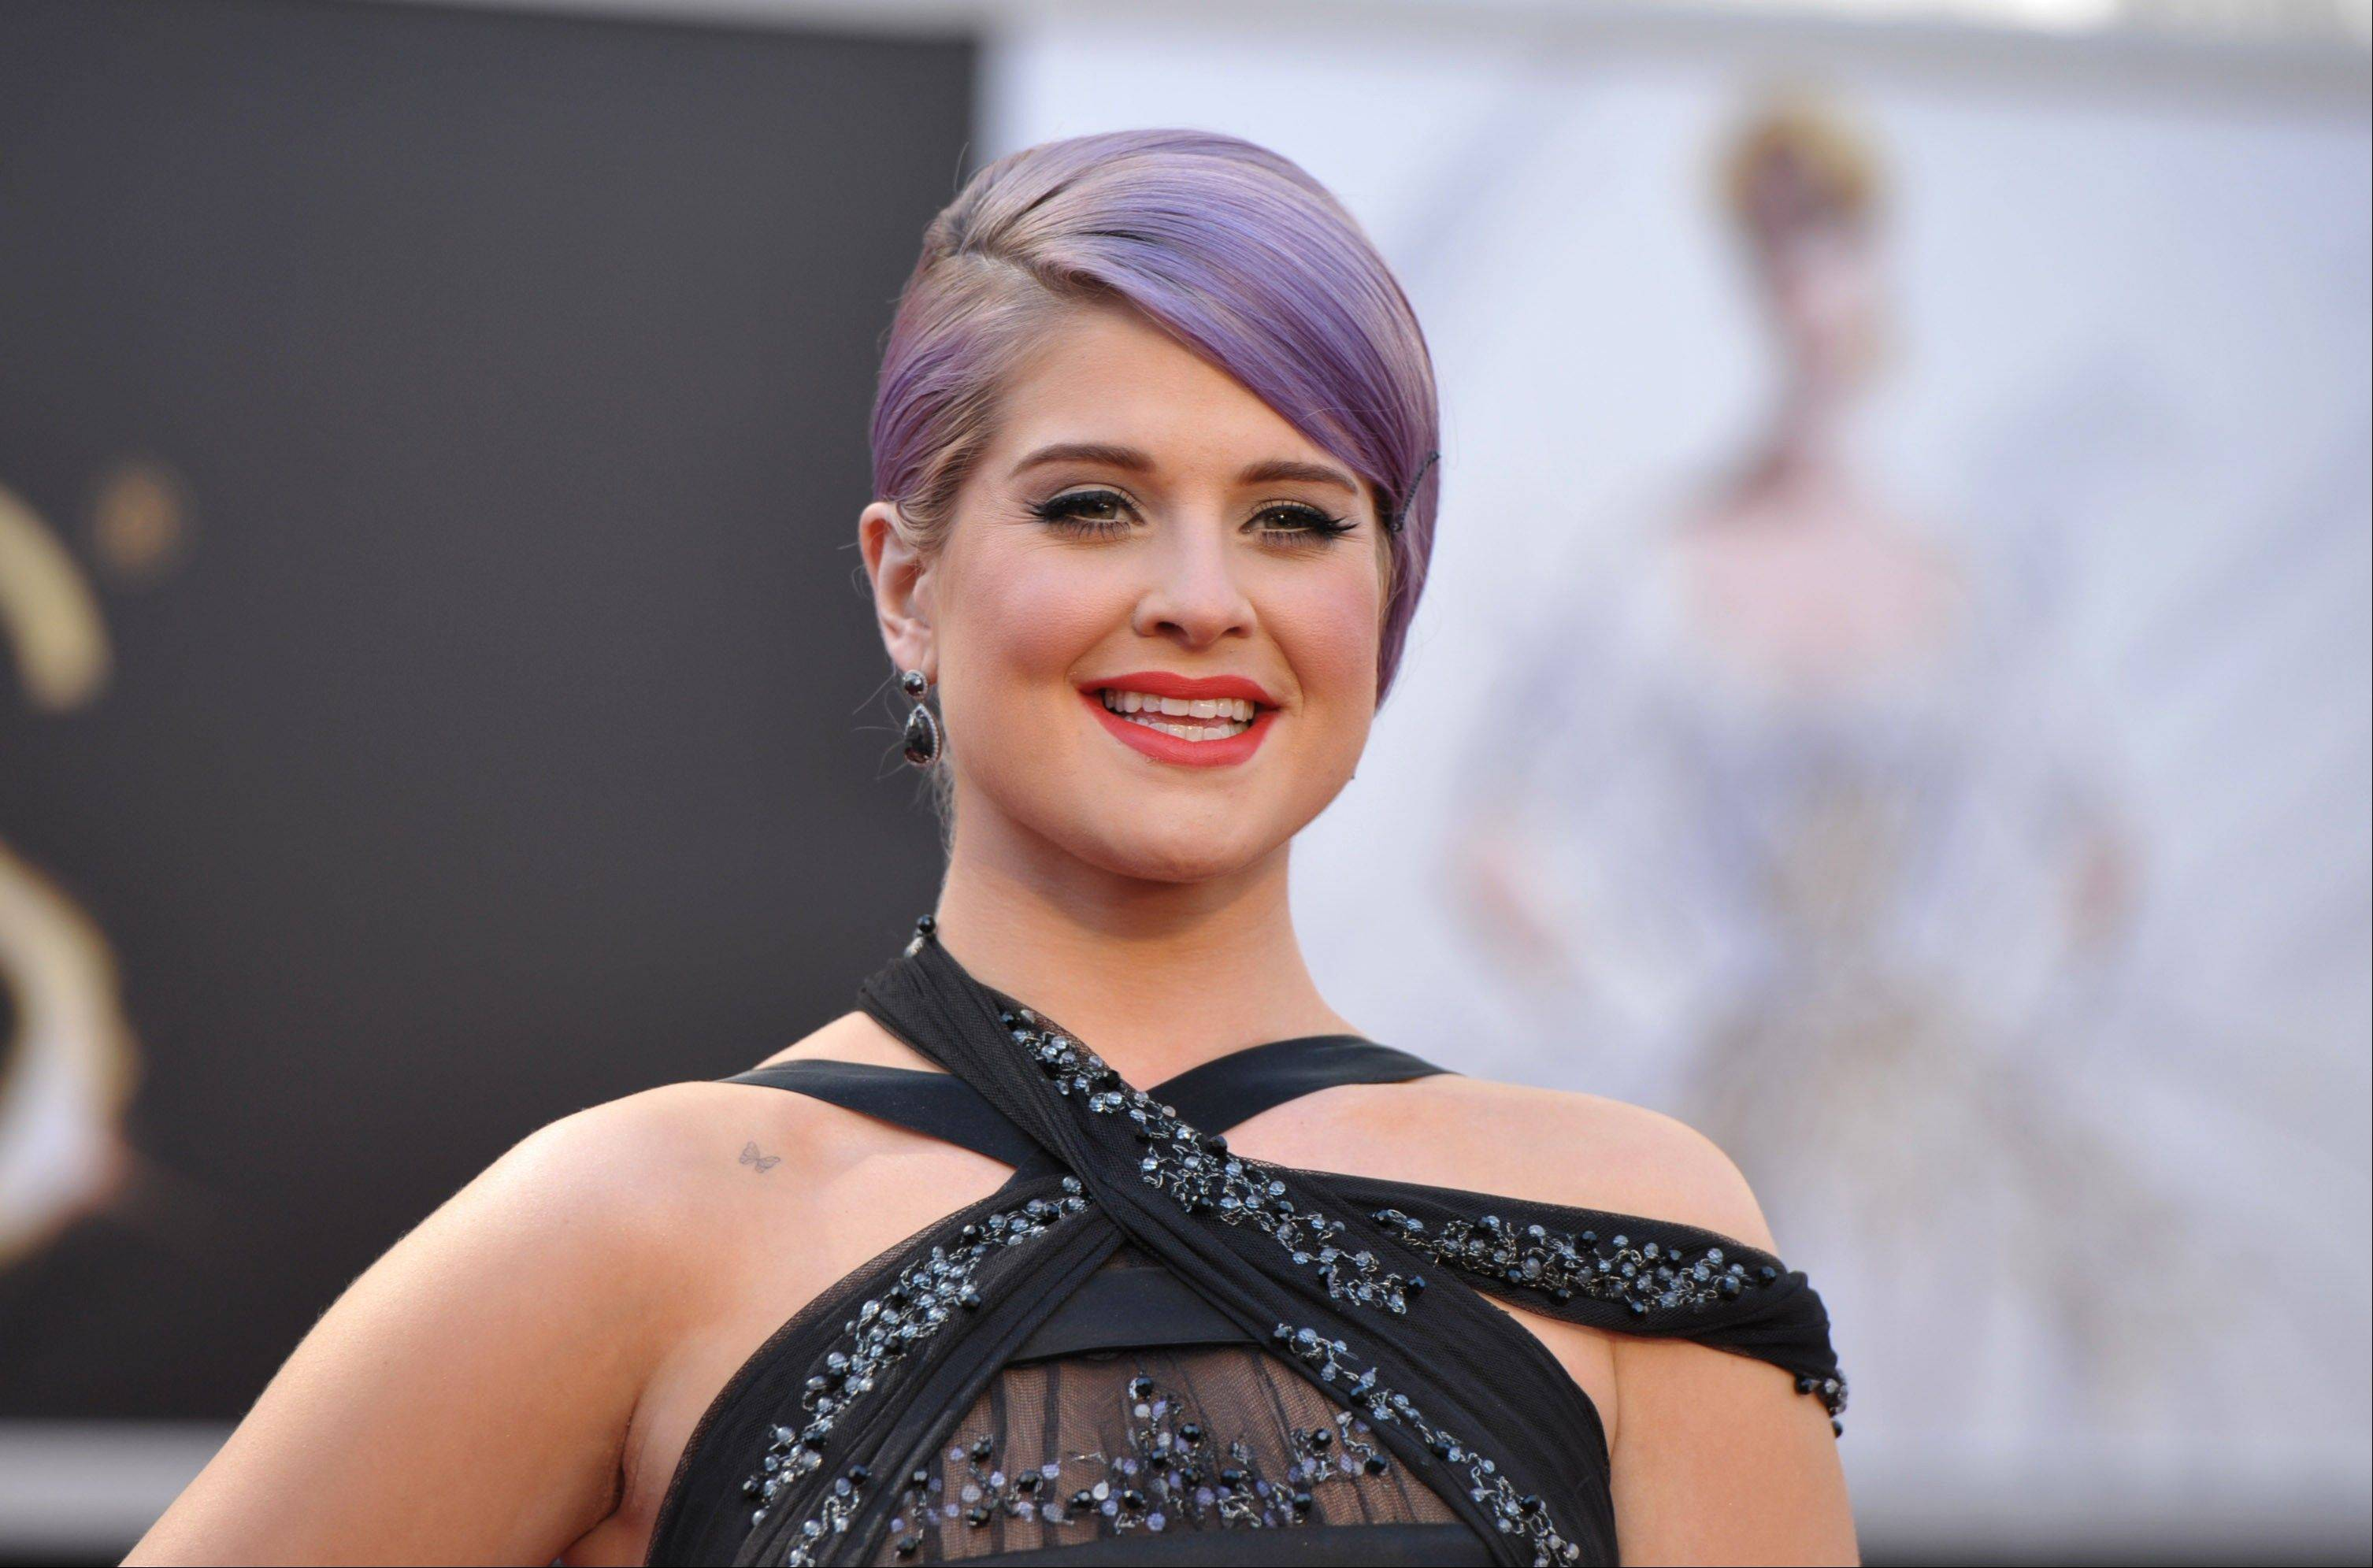 "TV personality Kelly Osbourne was hospitalized after fainting on the set of E!'s ""Fashion Police."" A spokeswoman for Osbourne told the cable network Thursday that the 28-year-old TV personality is awake, alert and in stable condition."